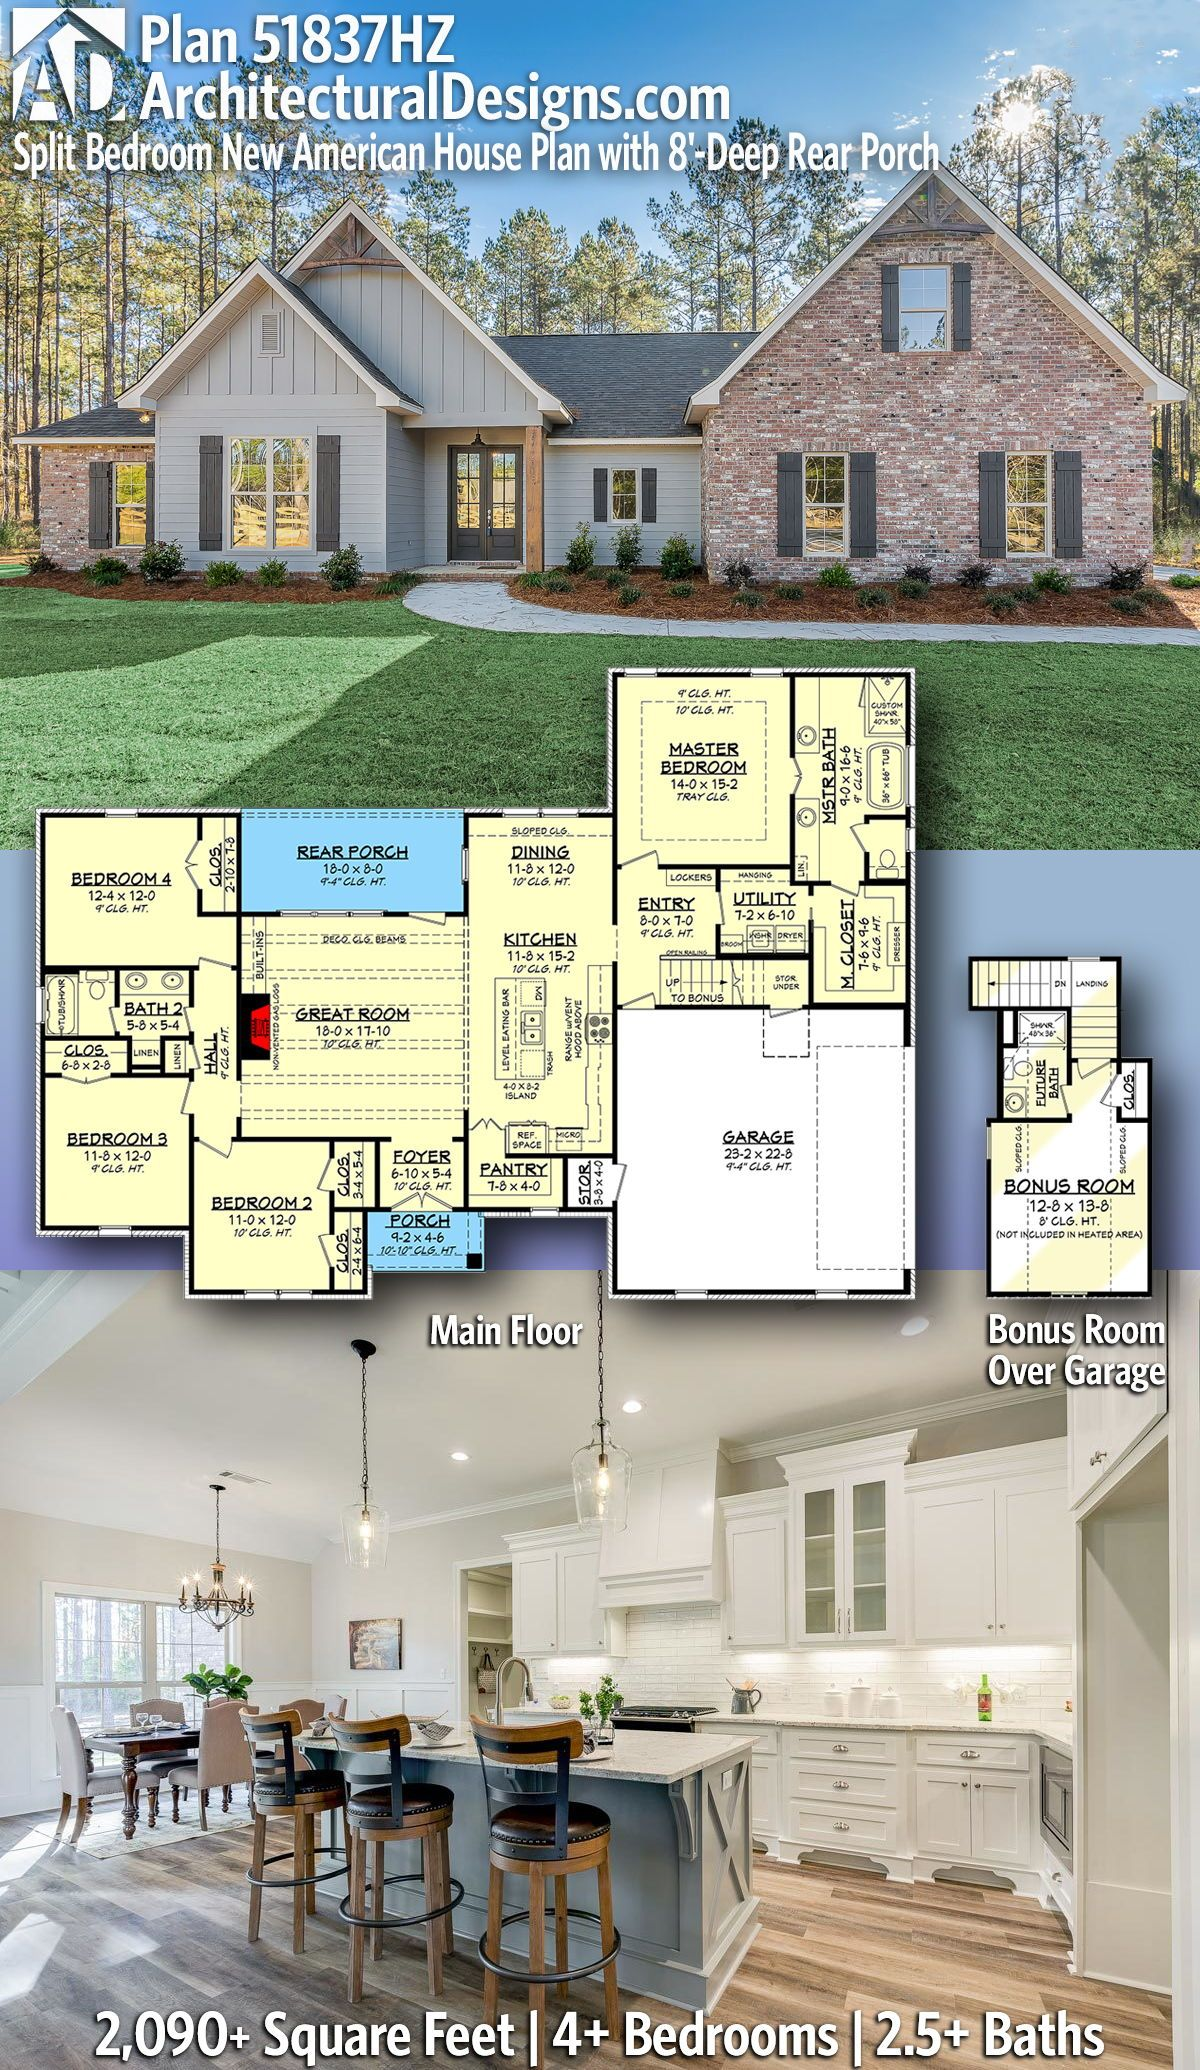 Plan 51837hz Split Bedroom New American House Plan With 8 Deep Rear Porch Craftsman House Plans American Houses New House Plans